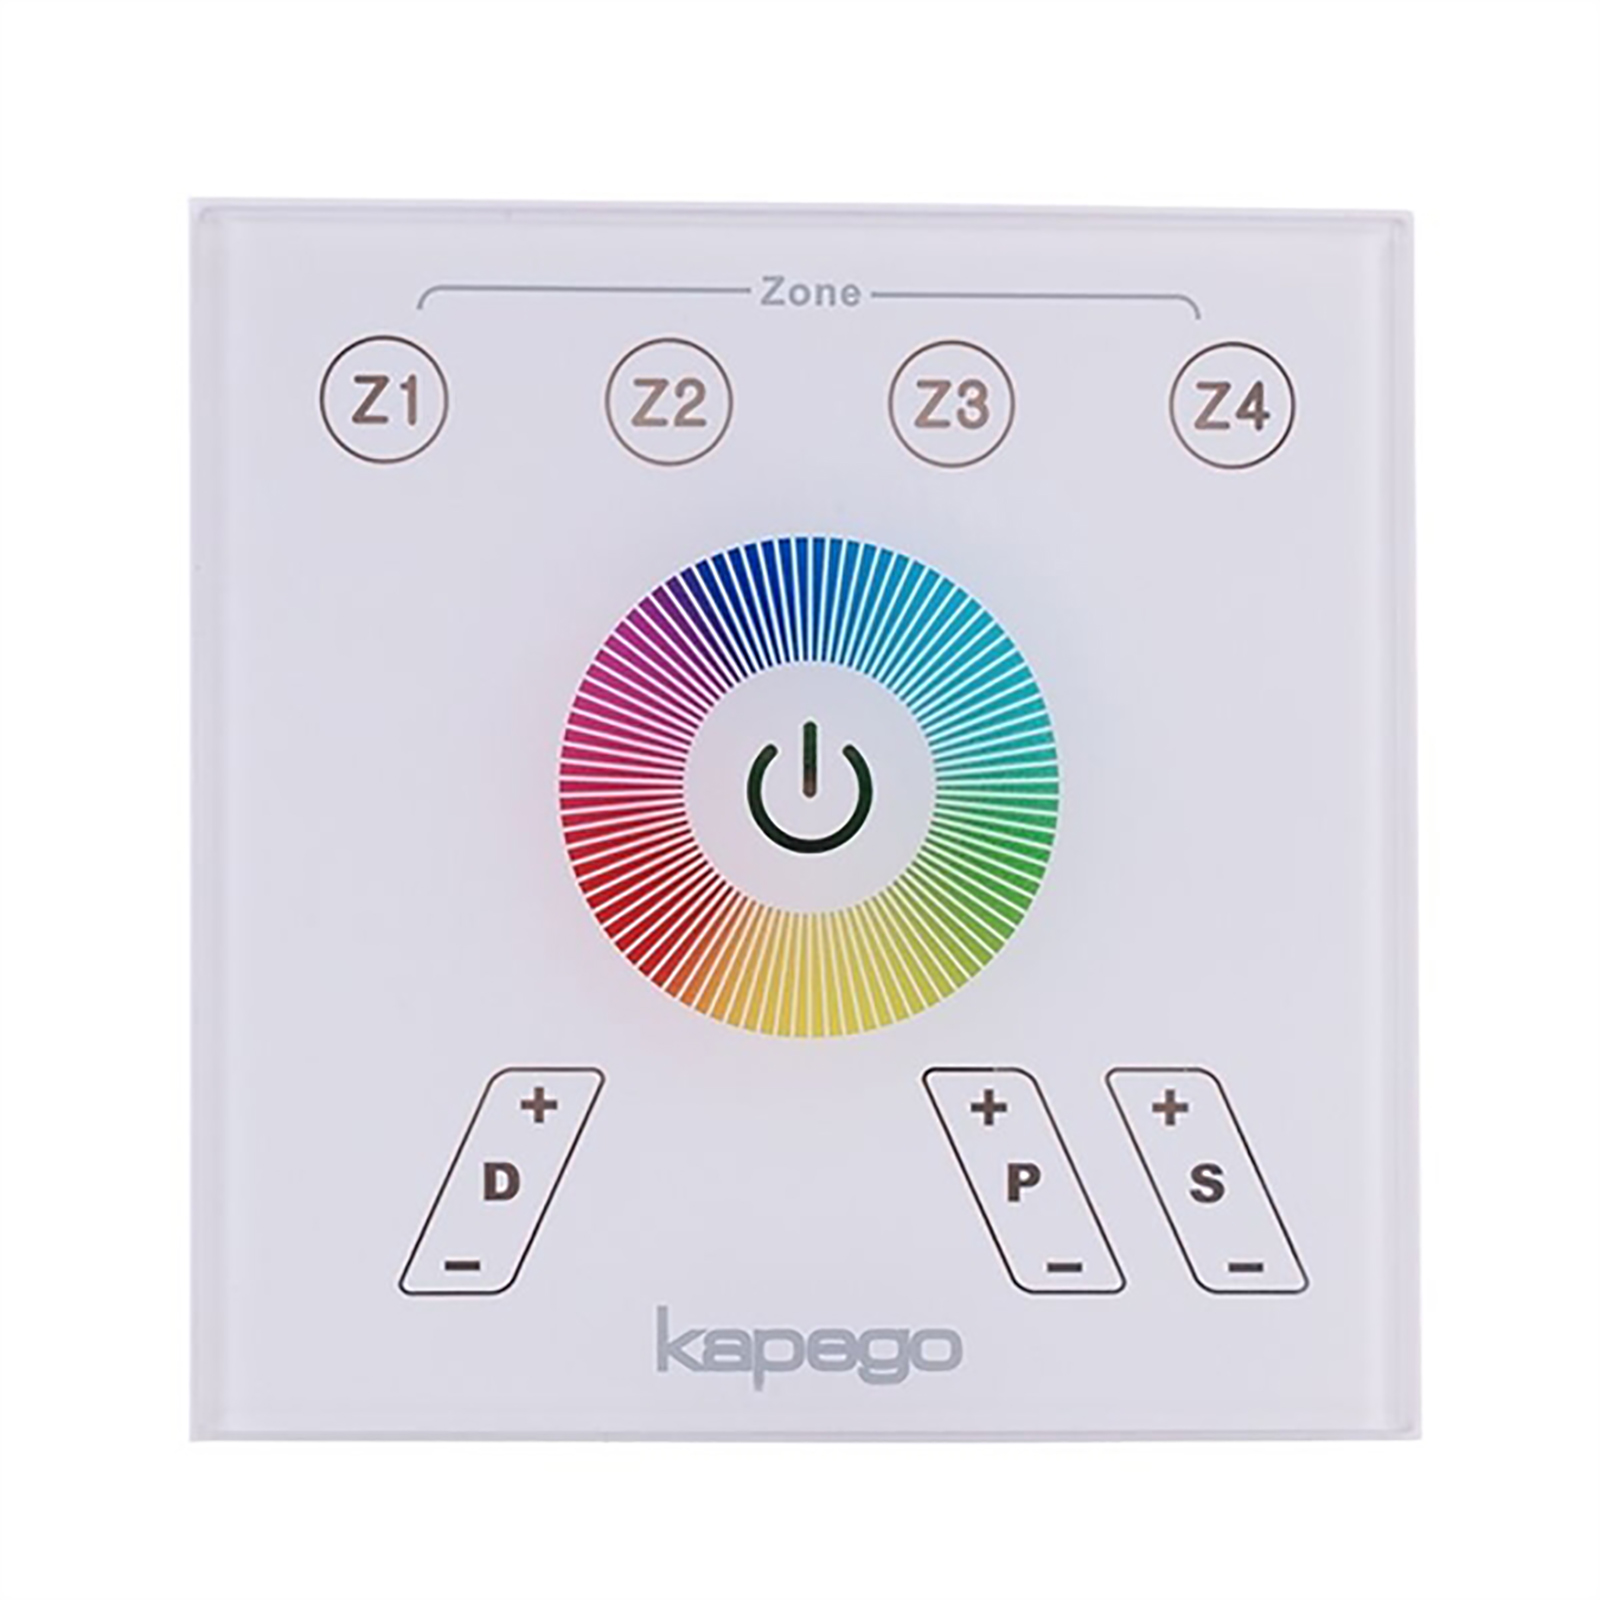 Panel controller touch LED lights RGB multicolor RF 4-zone 3CH 13 programs